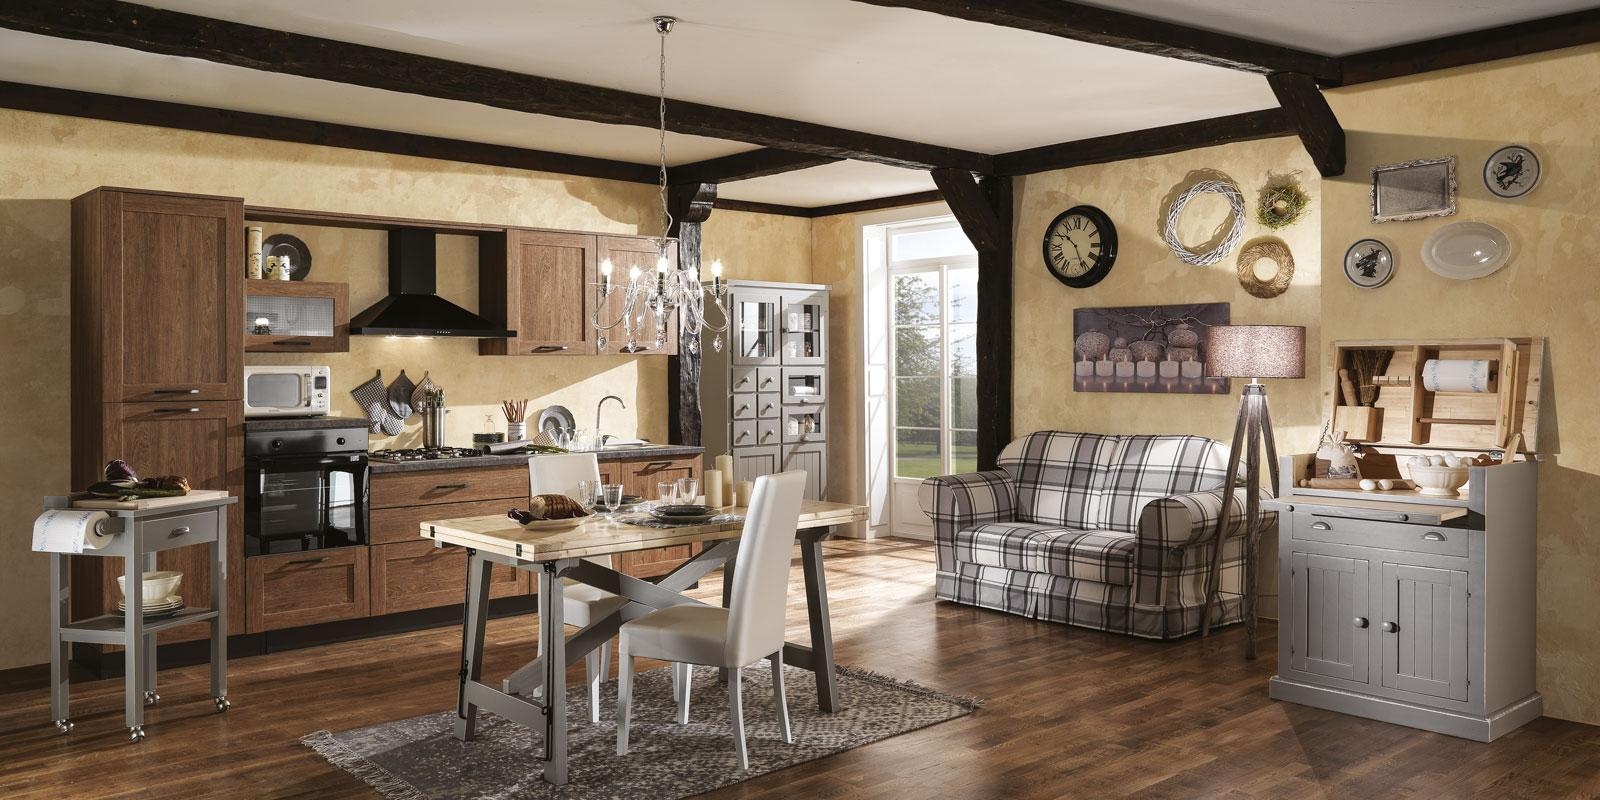 Casa in stile country protagonisti legno e materiali for Tende per arredare casa